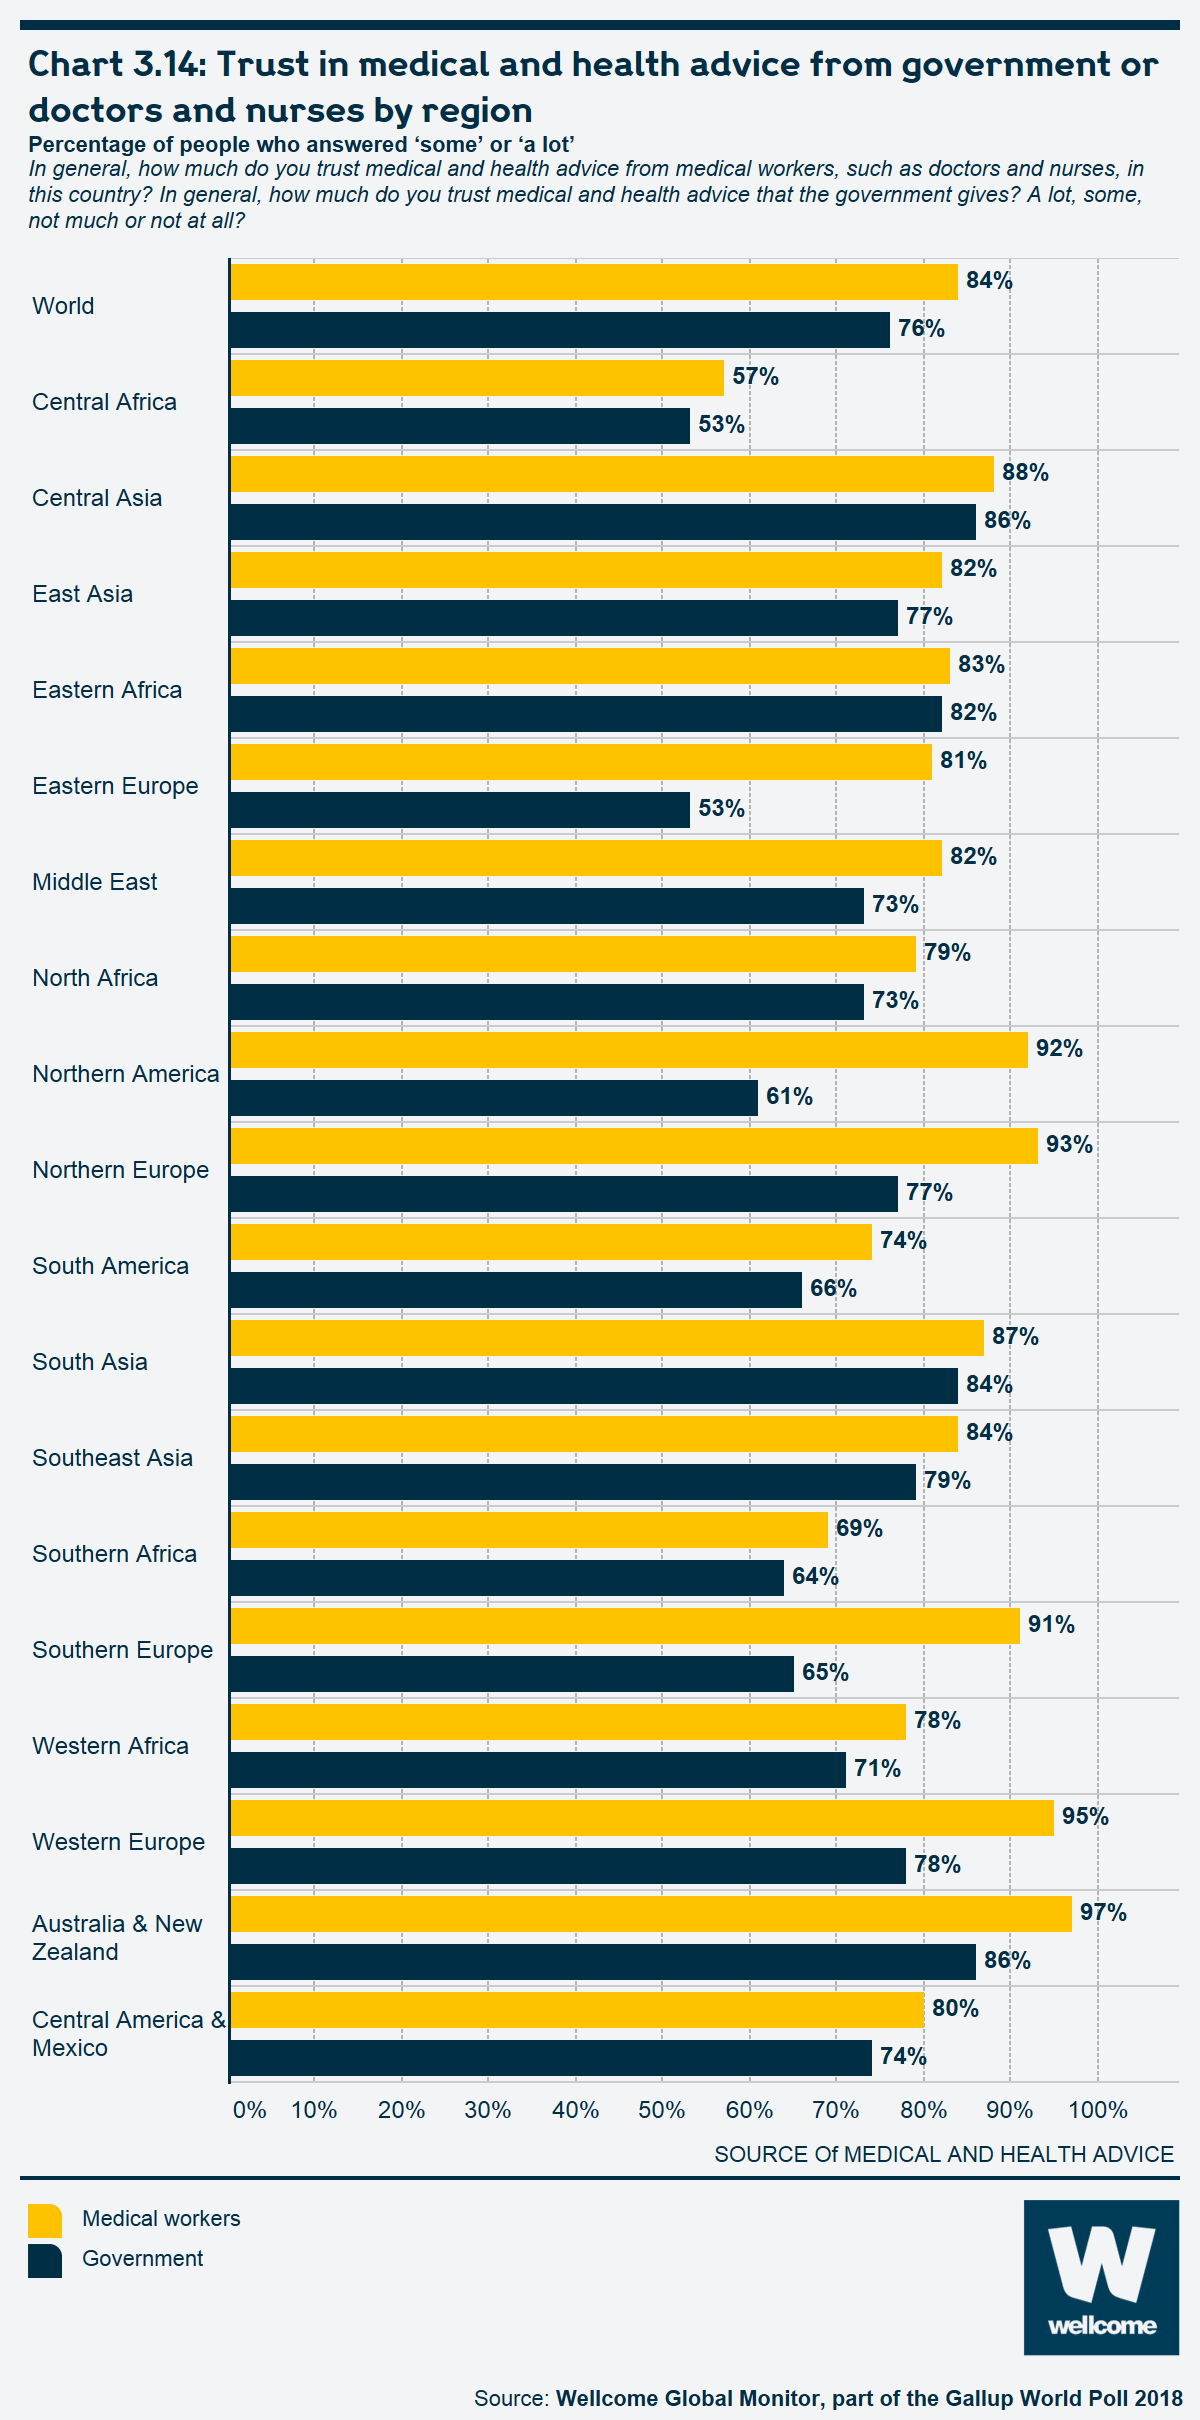 Chart 3.14 Trust in medical and health advice from government or doctors and nurses by region